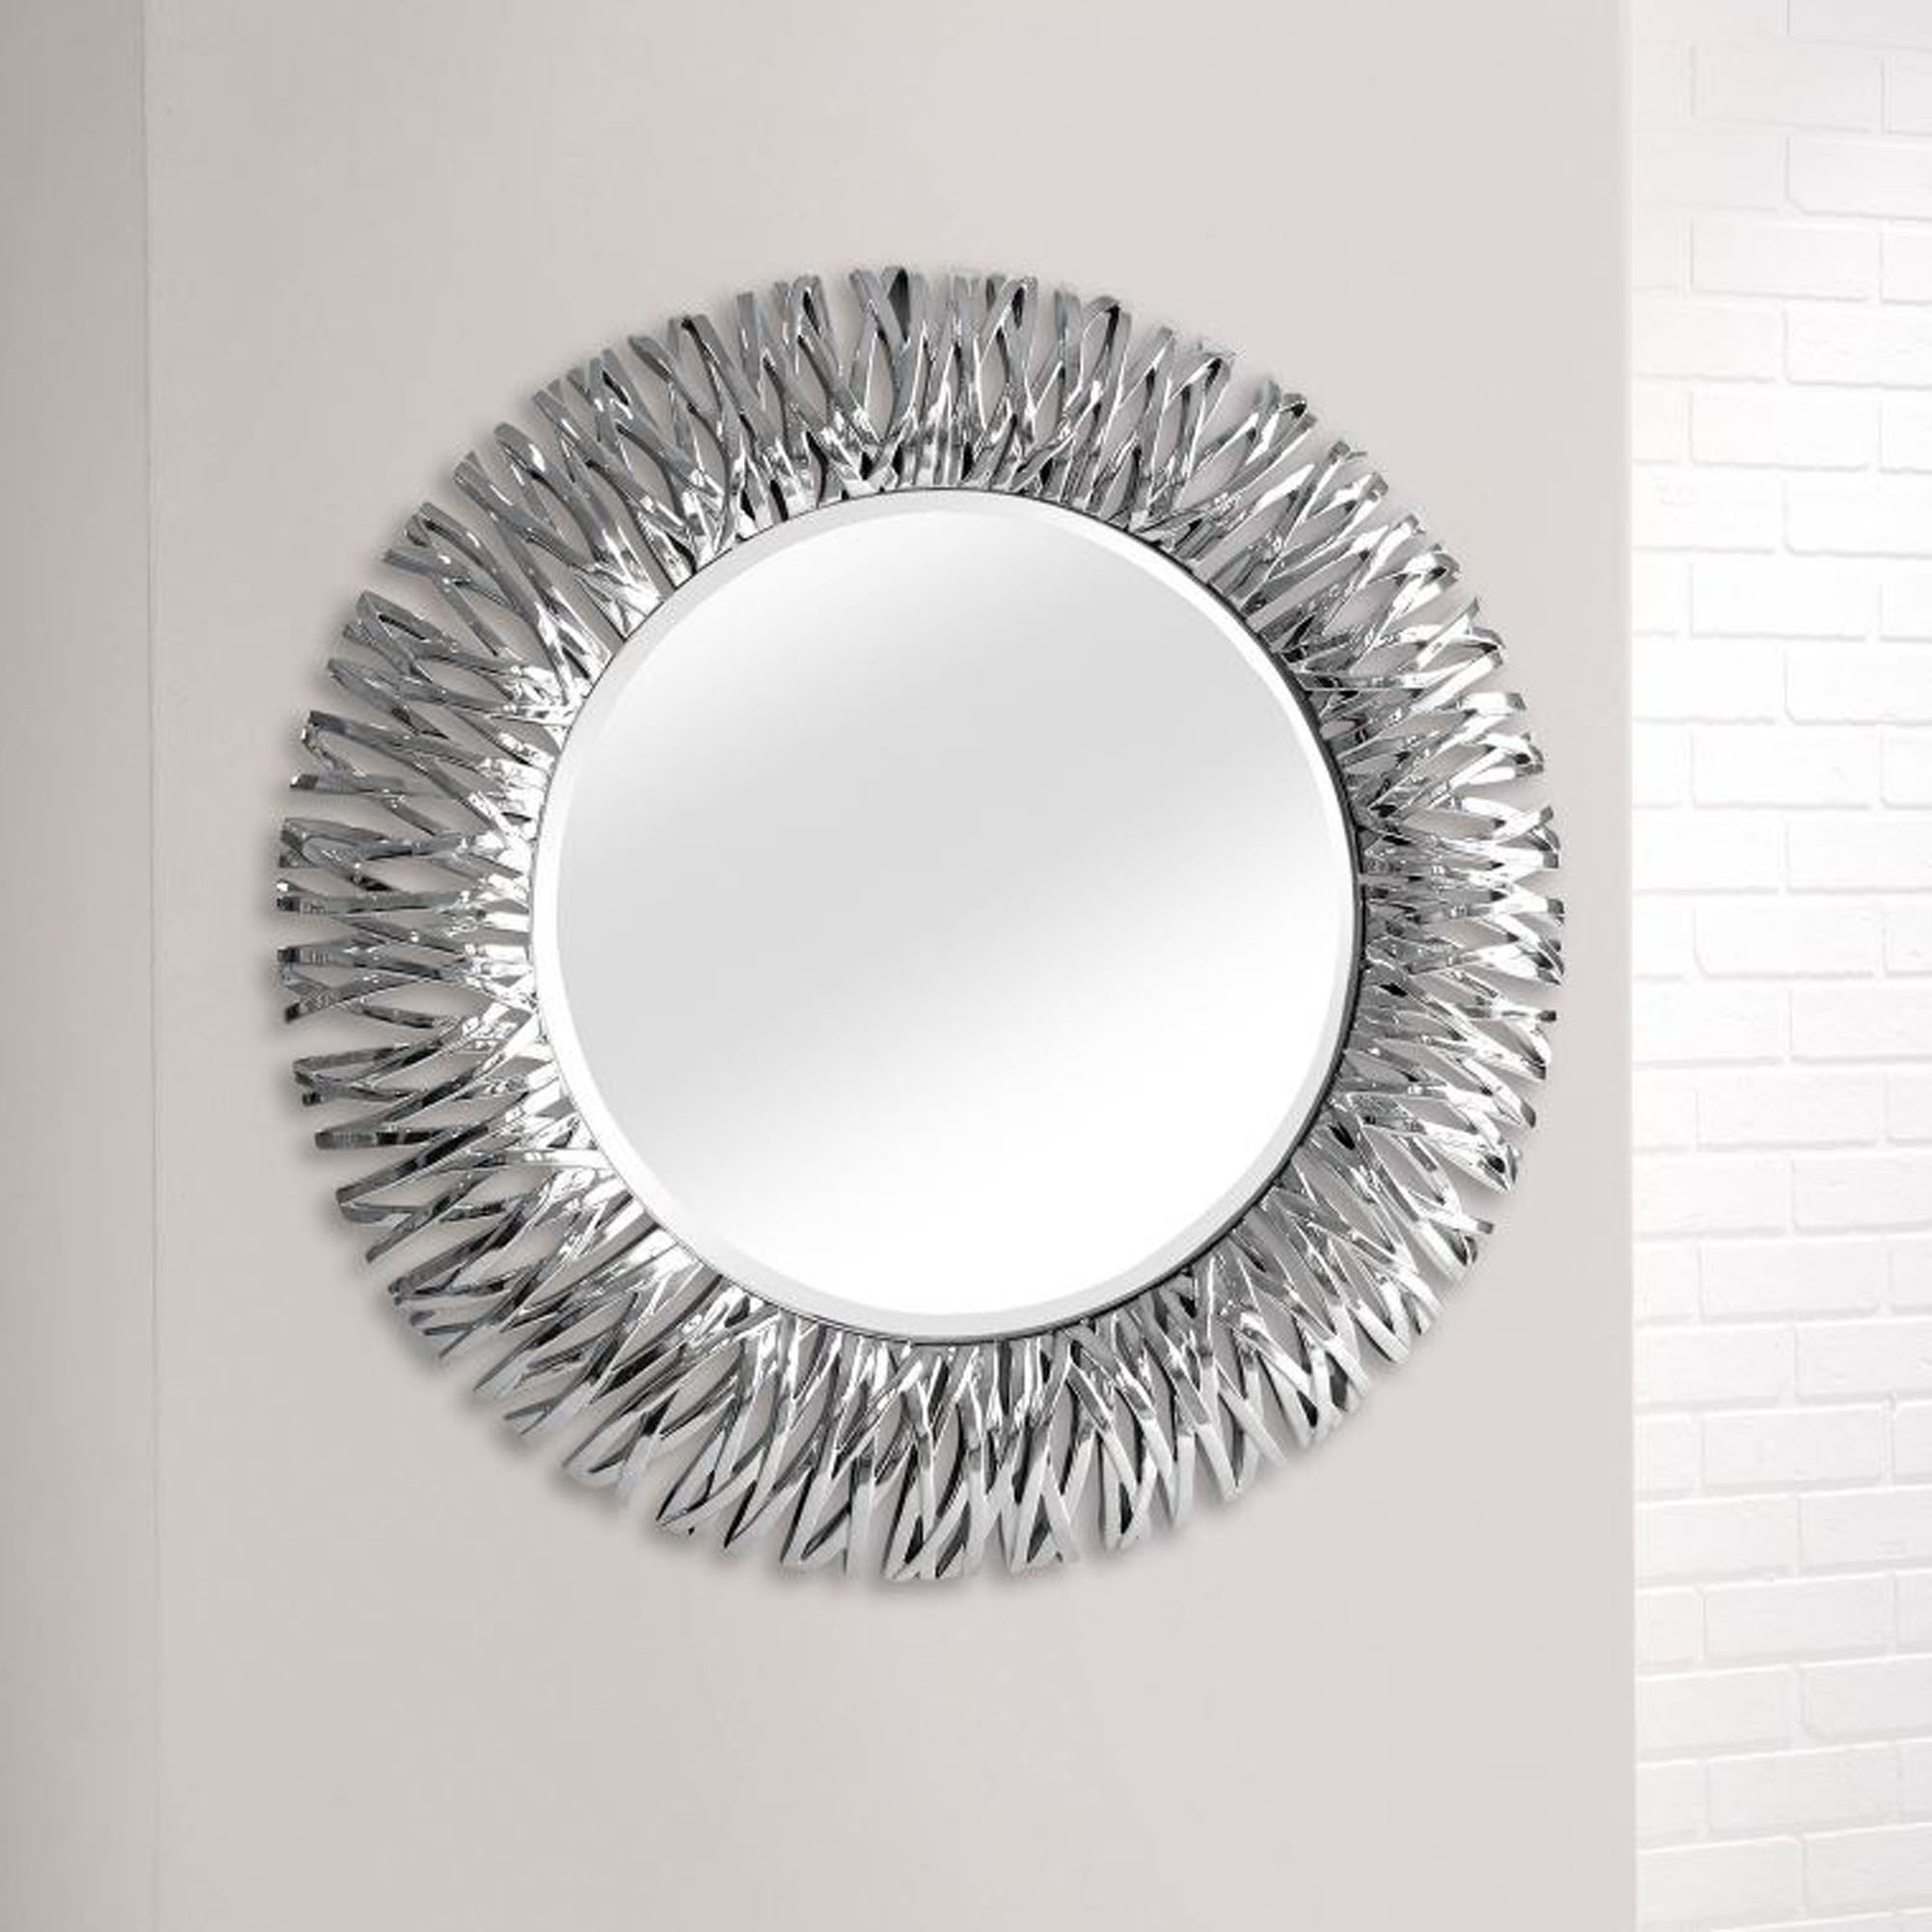 Detailed Chrome Silver Round Wall Mirror Contemporary